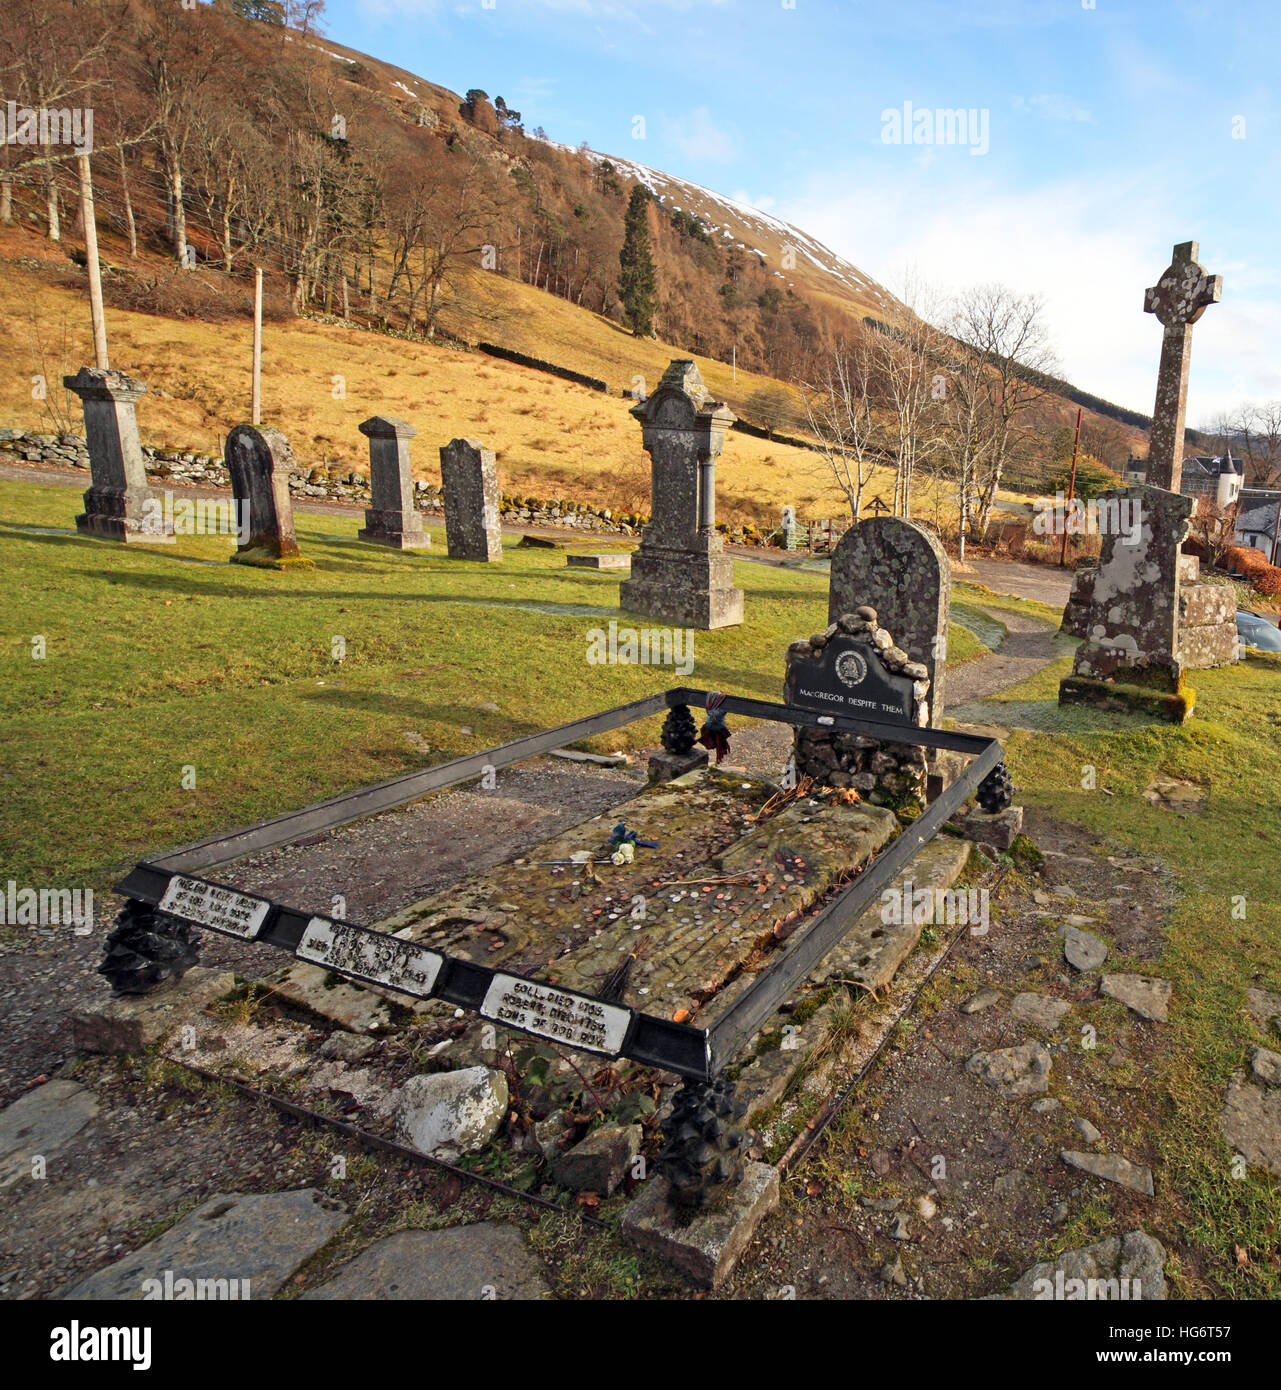 Inverlochlarig Beg,Balquhidder,Sterling,Scotland,UK,Inverlochlarig,Beg,Robert,Rob,Roy,RobRoy,MacGregor,Raibeart,Ruadh,MacGriogair,countryside,rural,grave,burial,place,burial place,Despite Them,Despite,them,son,braveheart,brave,heart,cross,pilgrim,pilgrimage,Scotlands History,Scotlands History,GoTonySmith,@HotpixUK,Tony,Smith,UK,GB,Great,Britain,United,Kingdom,Scotish,Scottish,Scotch,British,Scotland,Alba,problem,with,problem with,issue with,tourist,tour,travel,visit,famous,hero,martyr,tourism,beautiful,SNP,Scottish National Party,independance,independent,independence,wild,culture,Scots,Scots Culture,Scottish Culture,Historic,history,Historic Scotland,stone,stones,bones,Balquidder,film,Scottish,SNP,independance party,independence,indyref,referendum,2nd,second,Buy Pictures of,Buy Images Of,Images of,Stock Images,Tony Smith,United Kingdom,Great Britain,British Isles,Scottish Nationalism,Scotlands History,Scotlands History